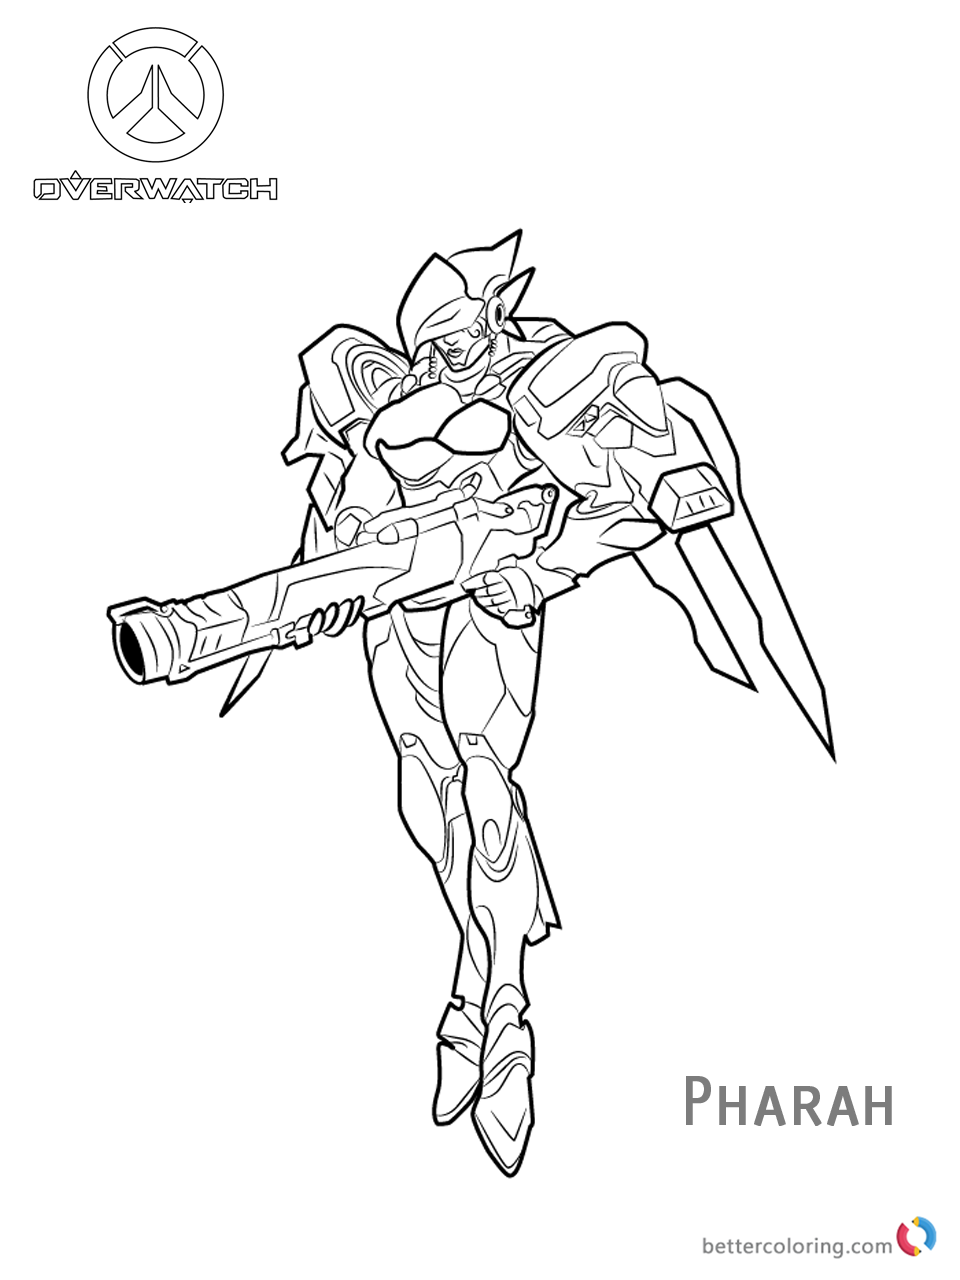 Pharah from Overwatch Coloring